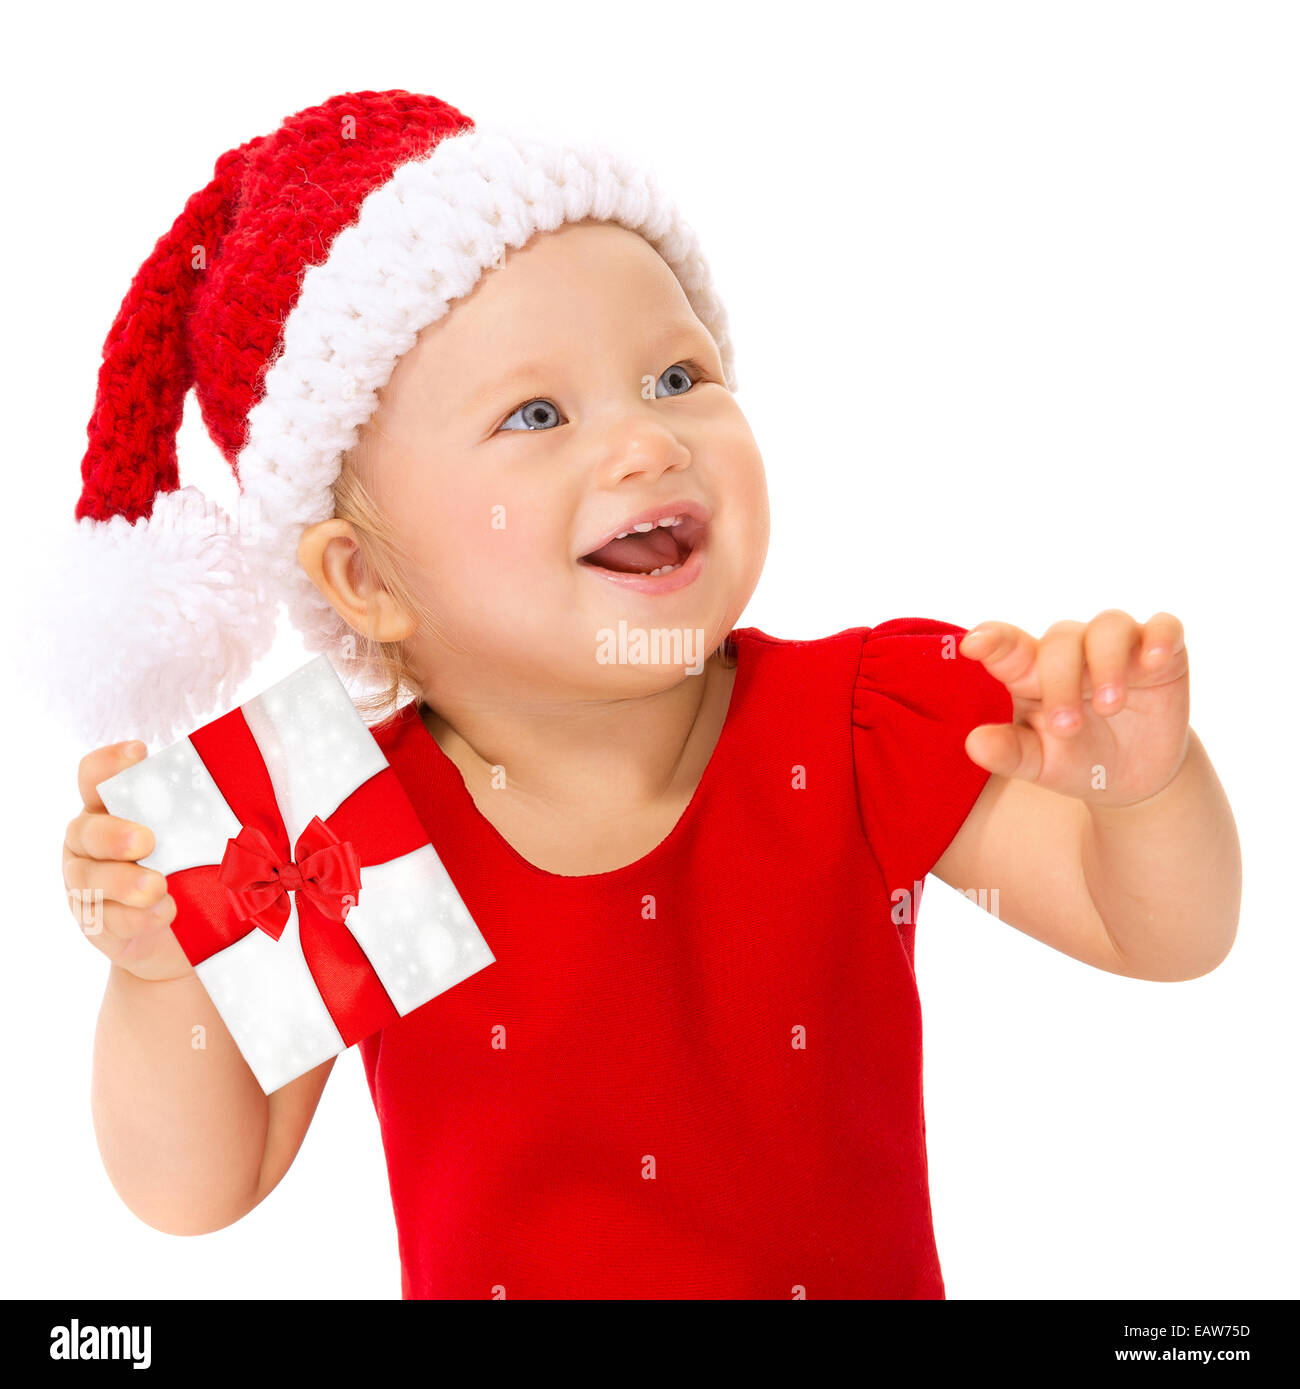 2c290ce34a5 Closeup portrait of happy smiling child with Christmas gift isolated on  white background